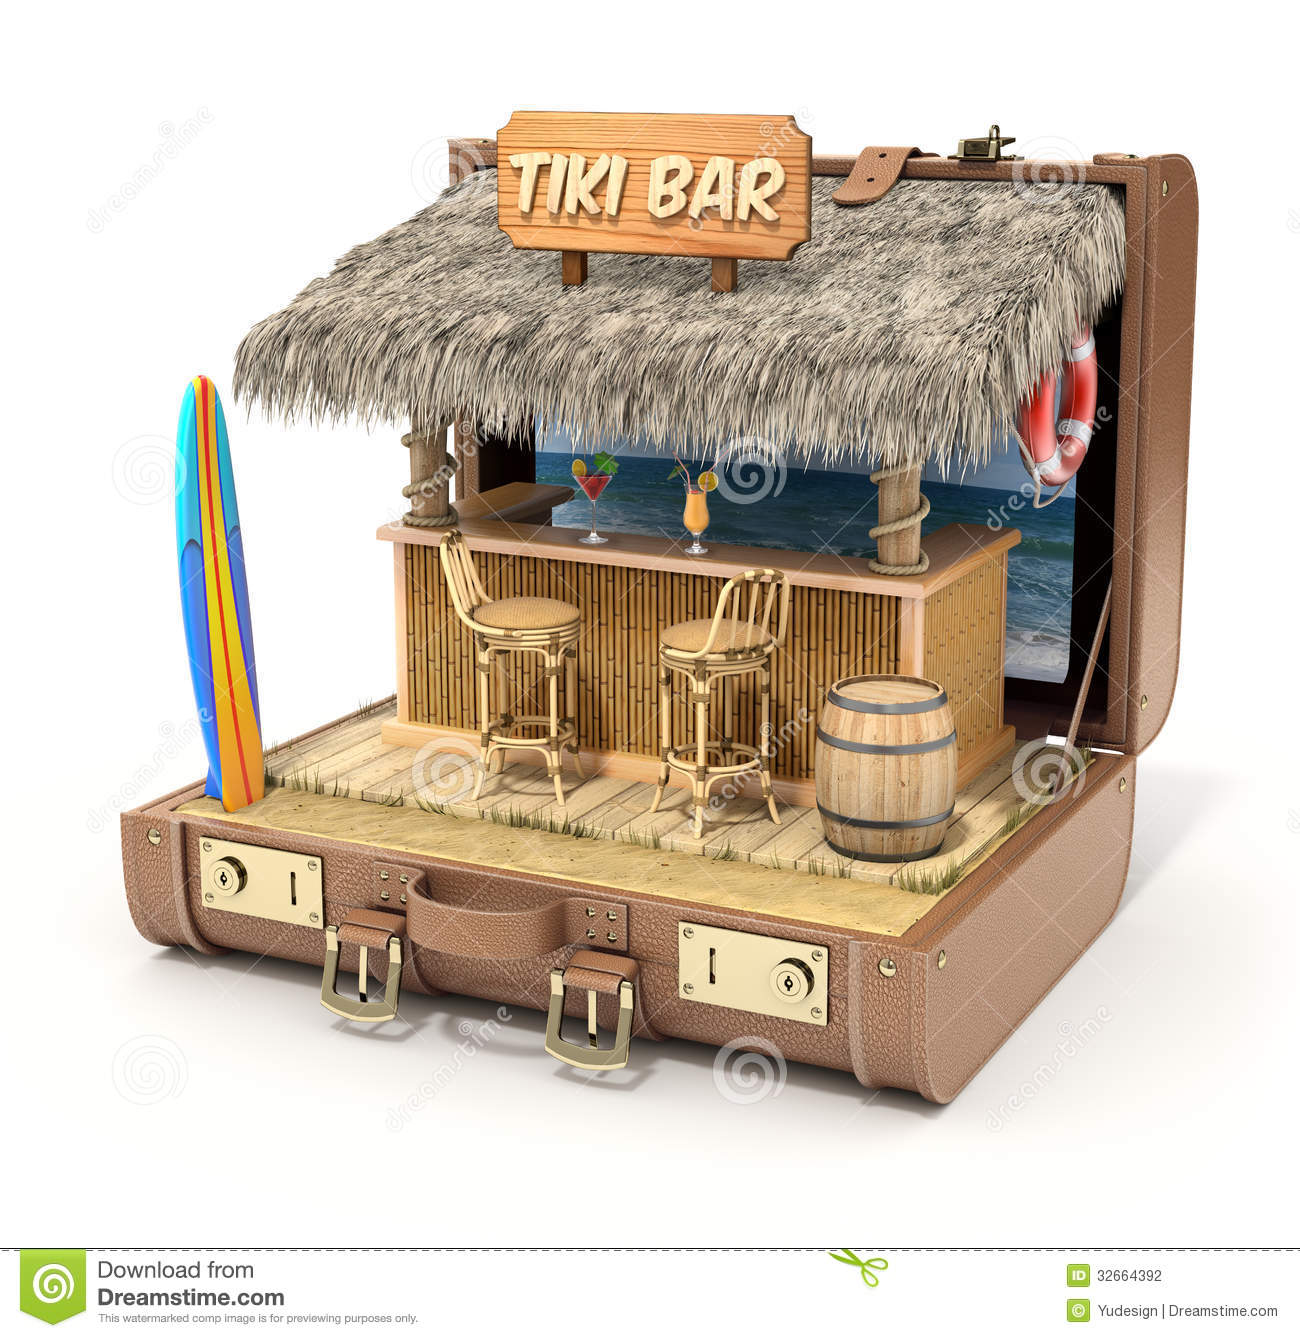 Tiki bar in the case stock photography image 32664392 - Image of bar ...